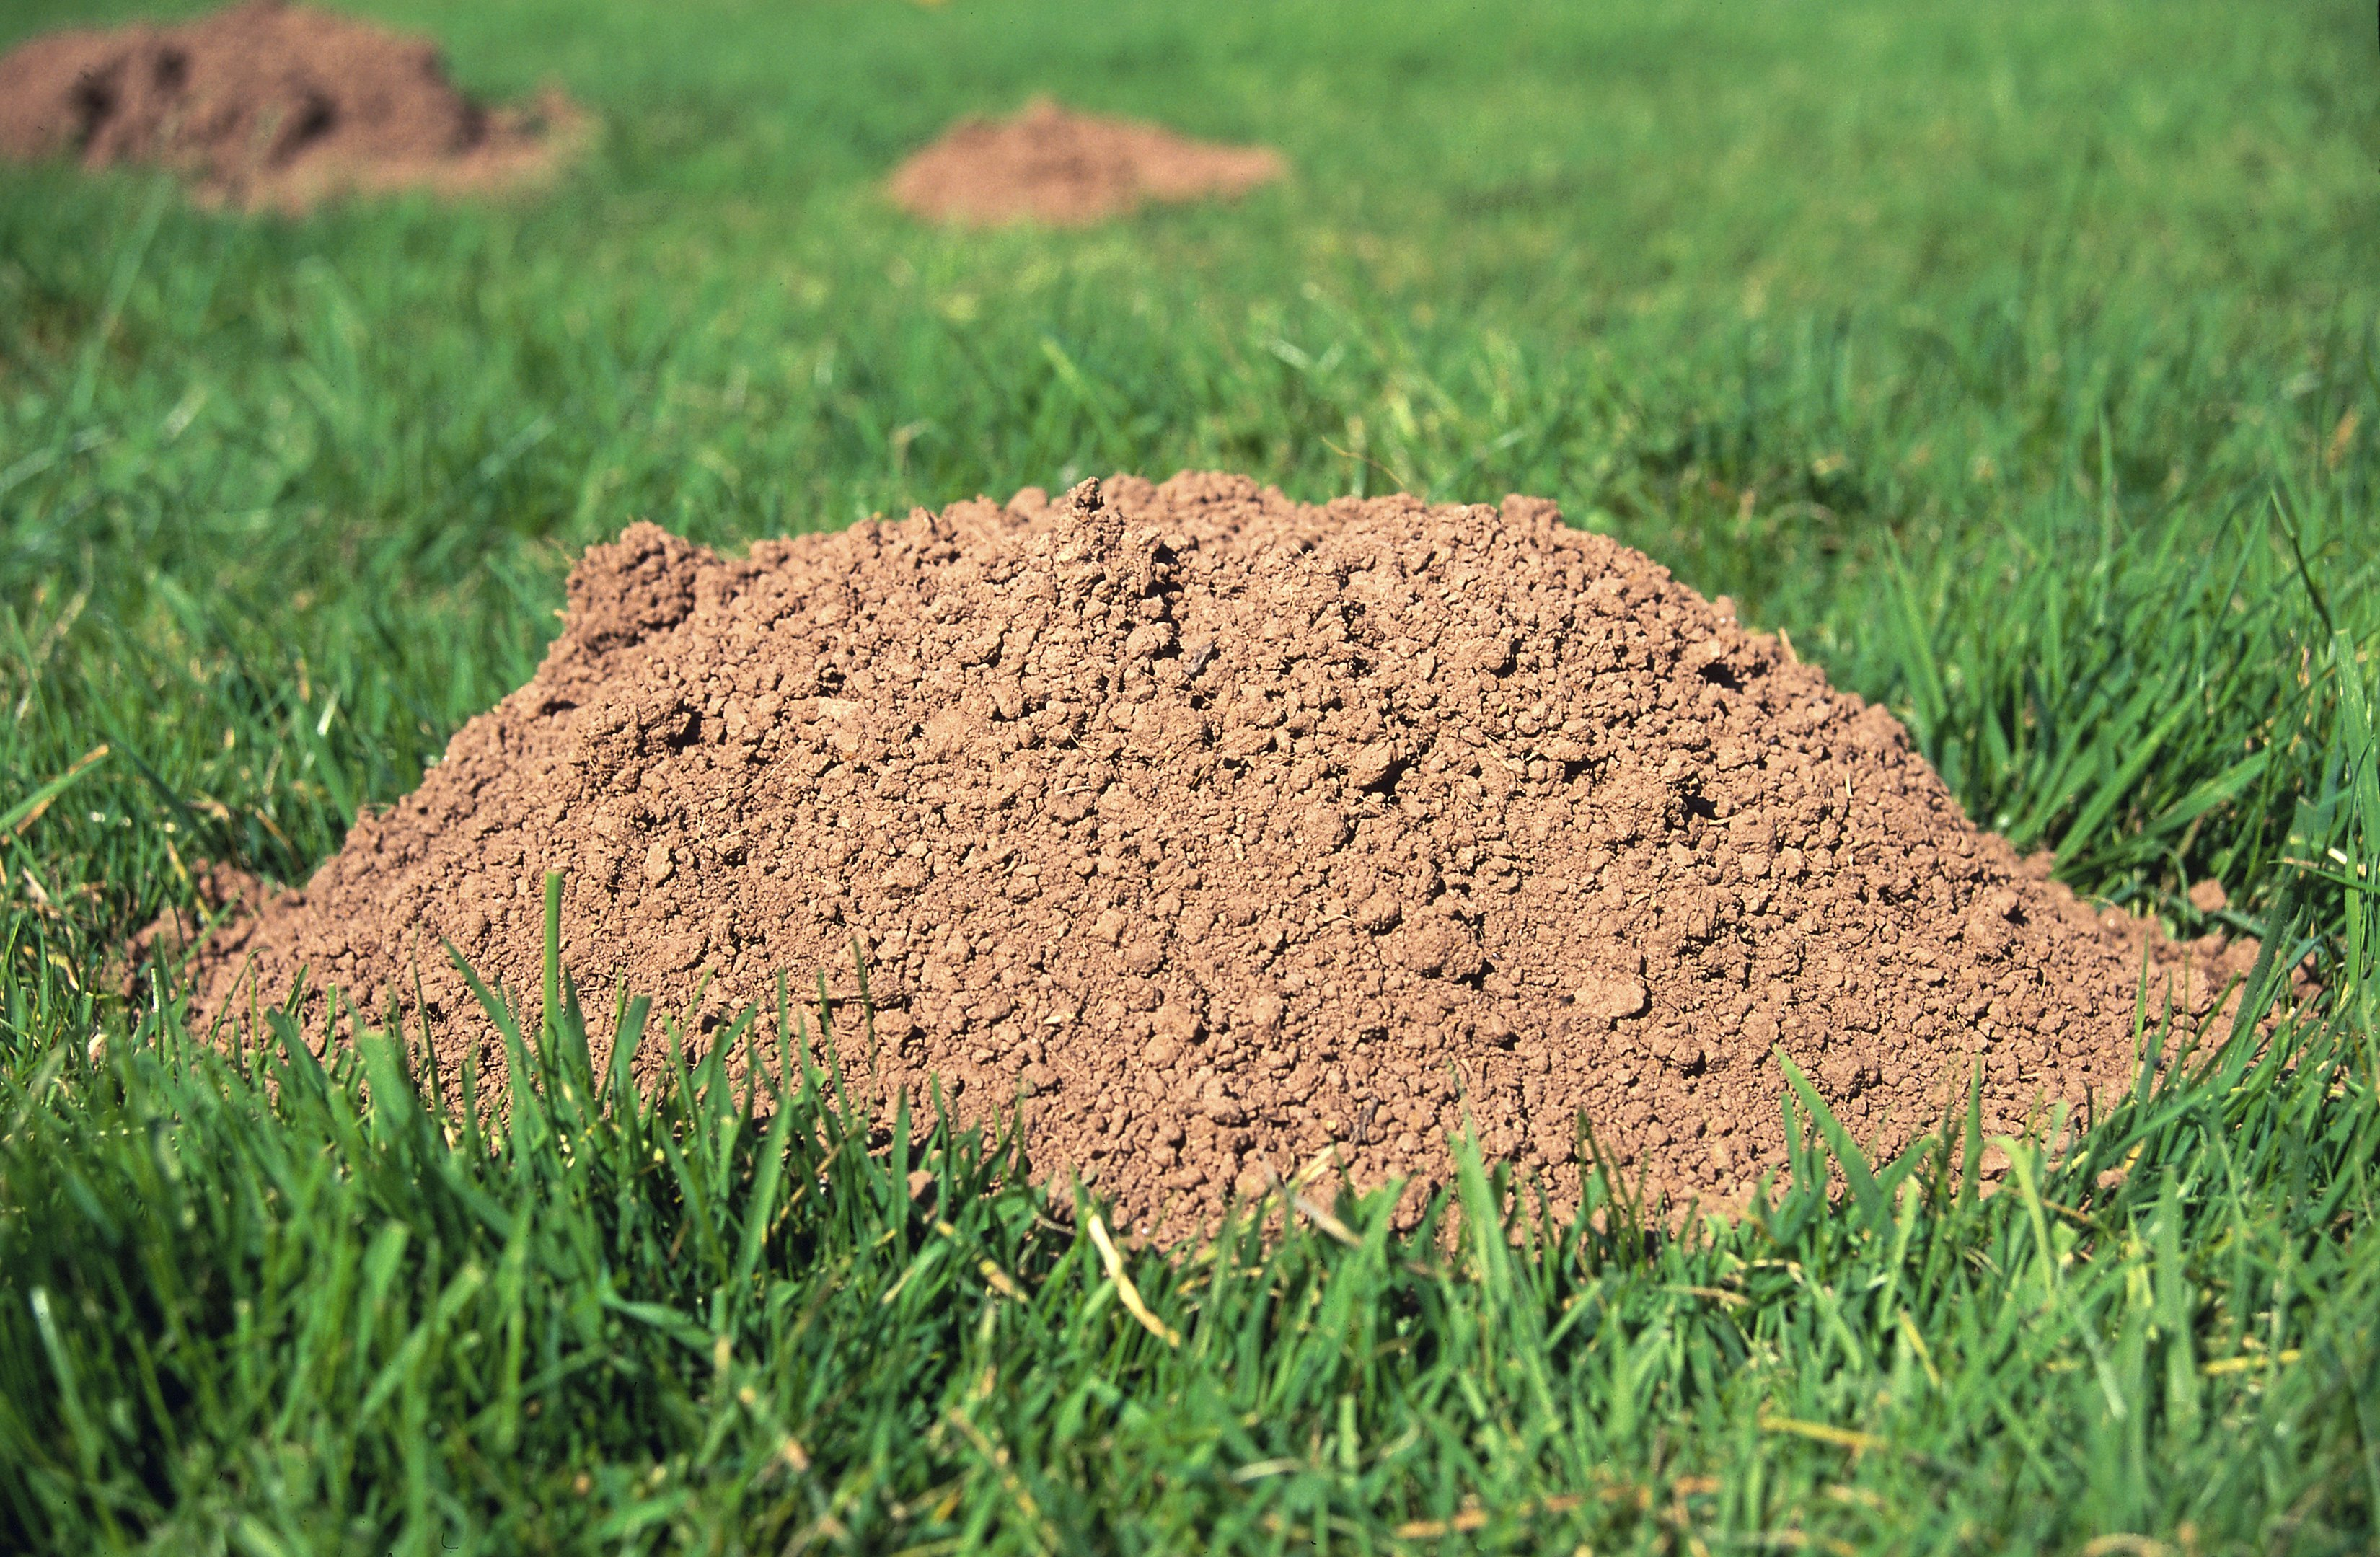 How to get rid of ground moles - How To Get Rid Of Ground Moles 27